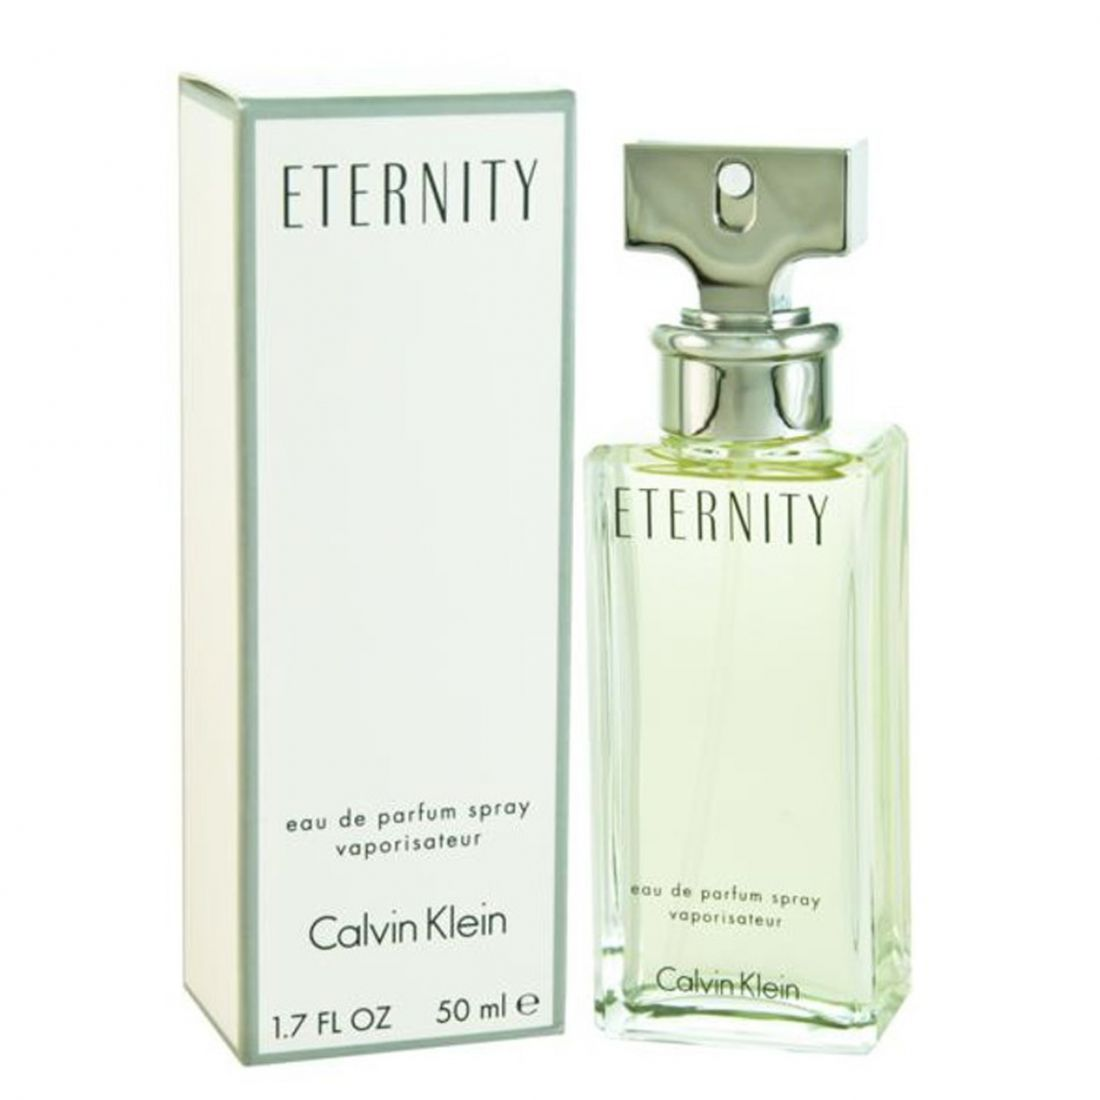 Calvin Klein - Eternity, 50 ml